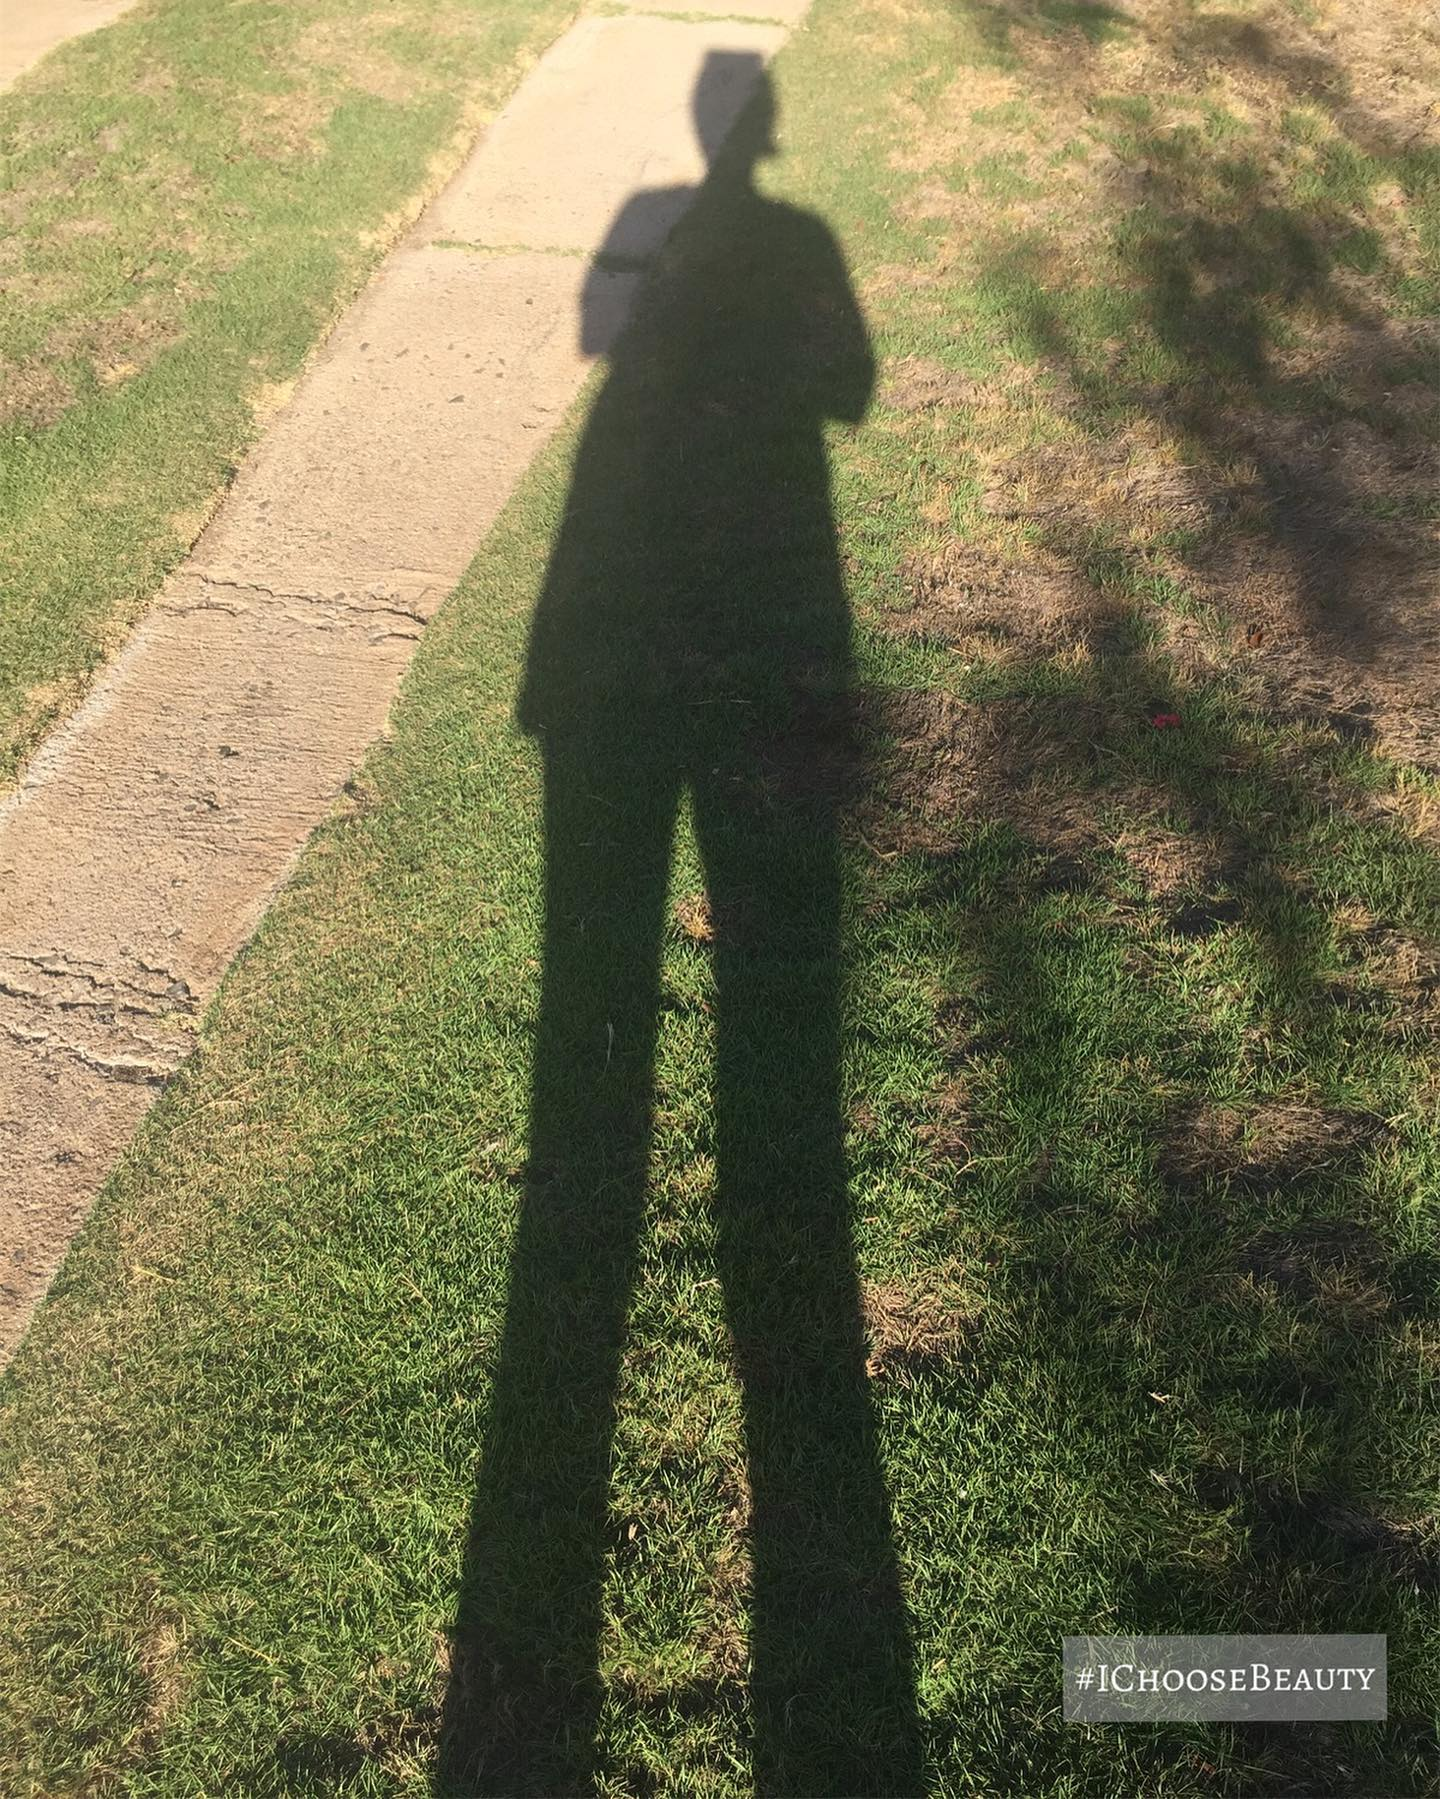 Just me and my (crazy tall) shadowwwww! #ichoosebeauty Day 2576